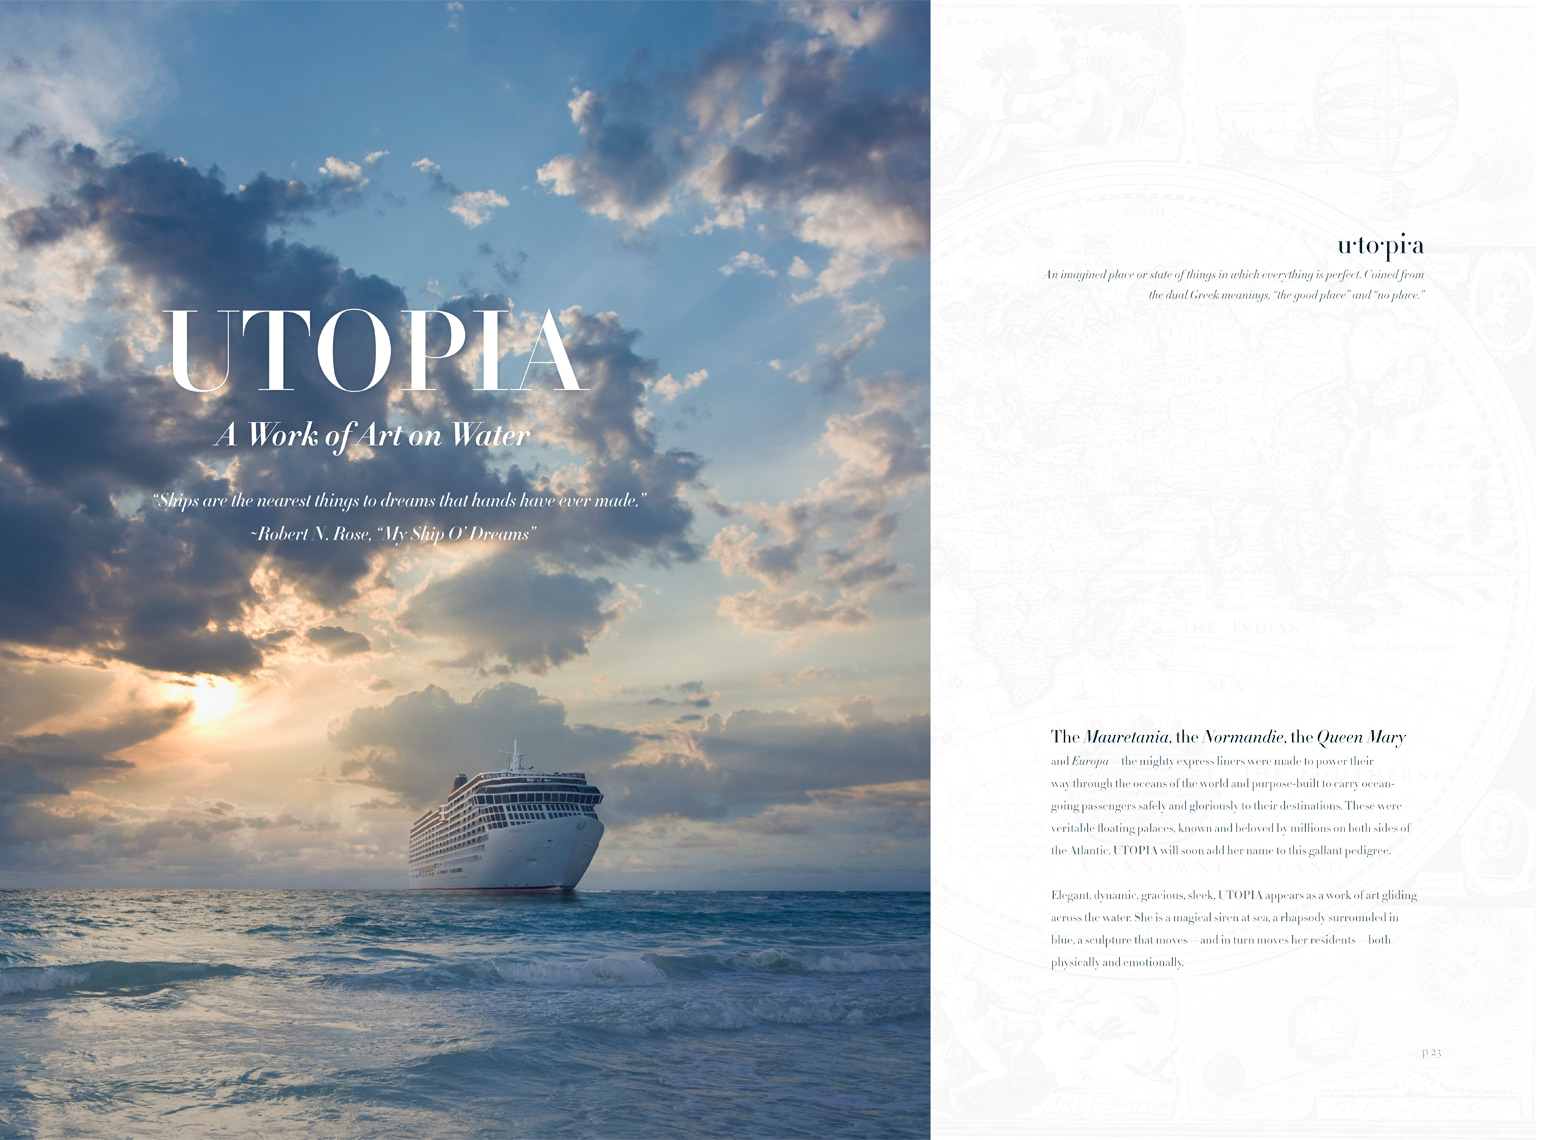 Utopia Luxury Yachts | Geoffrey Ragatz Photography